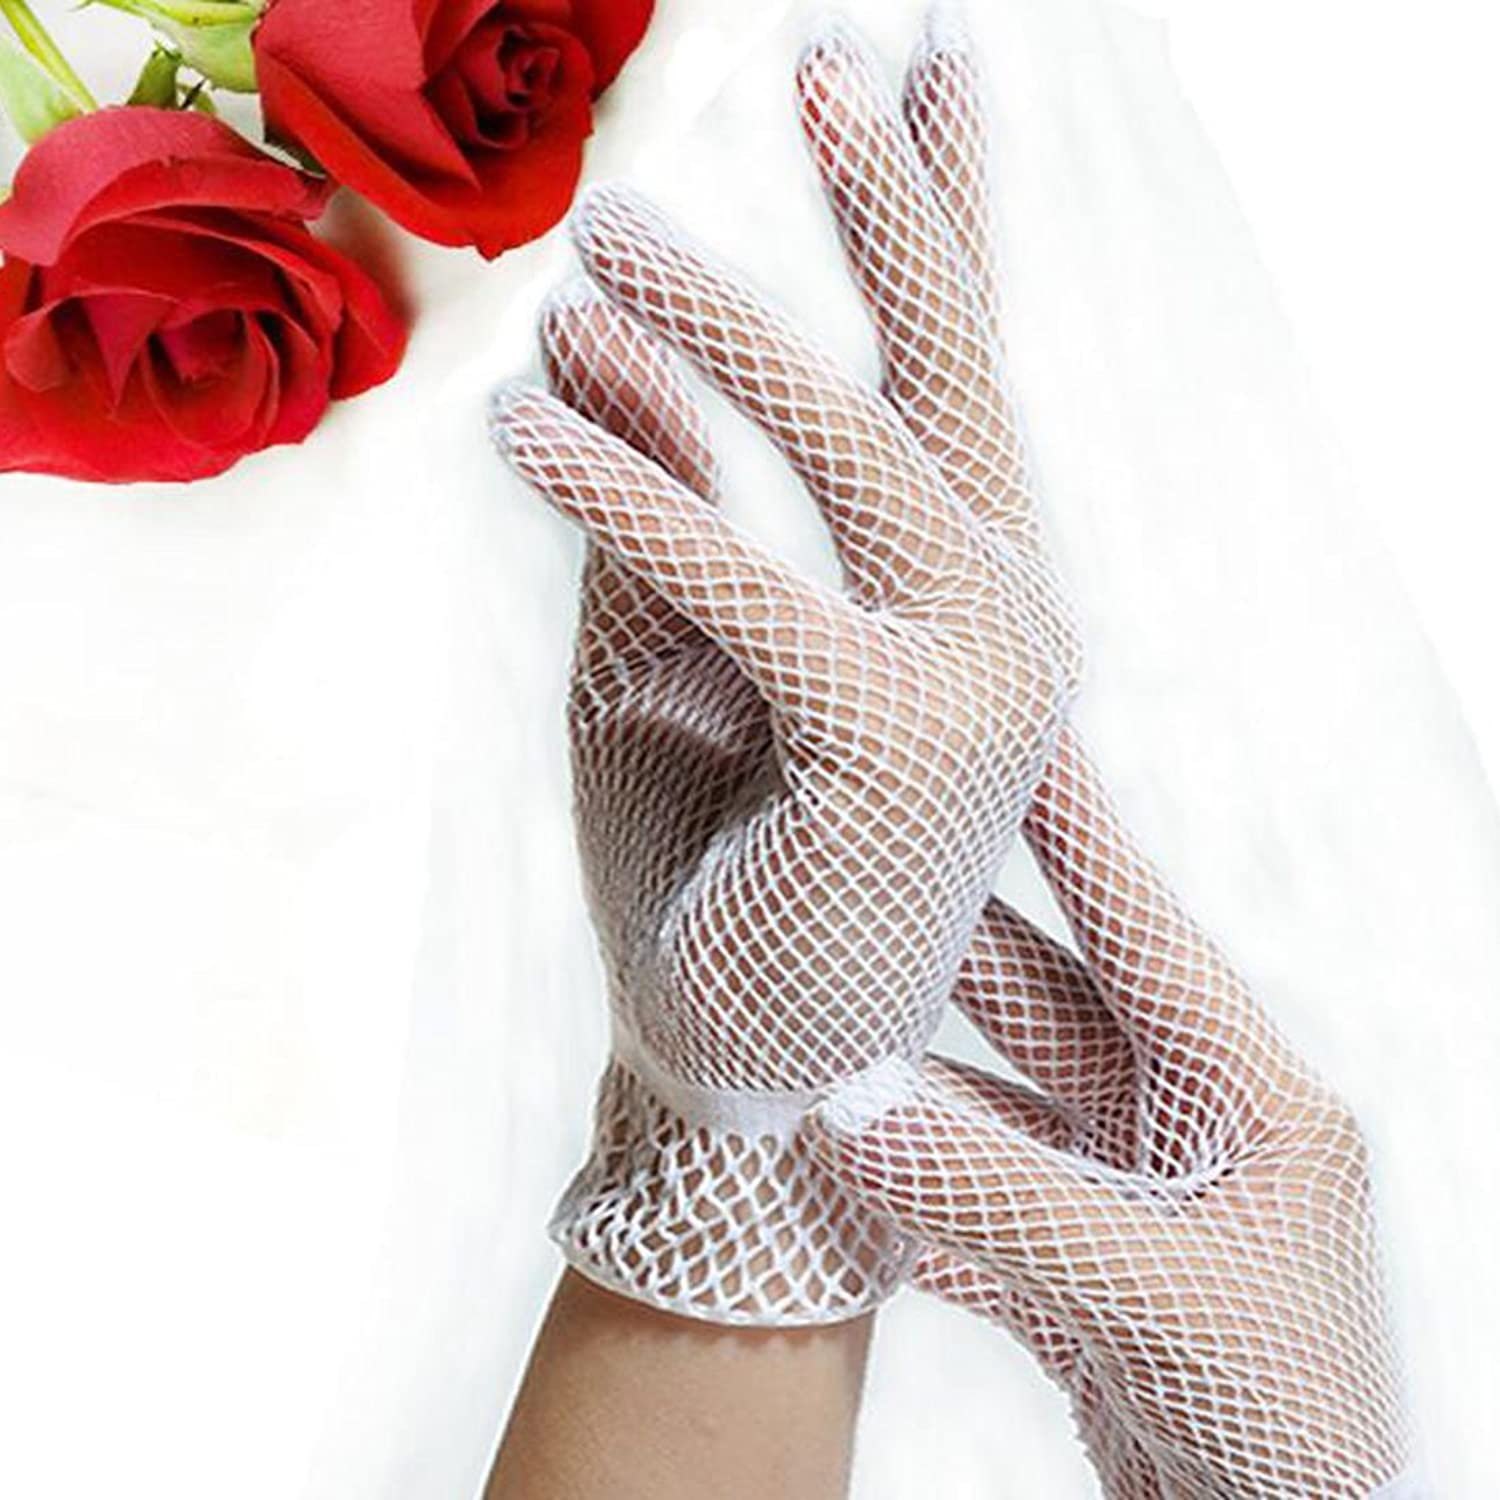 Vintage Inspired Wedding Dress | Vintage Style Wedding Dresses 1 Pair Fishnet Mesh Gloves Fashion Women Gloves Summer UV Protection Lace Glove White $2.11 AT vintagedancer.com